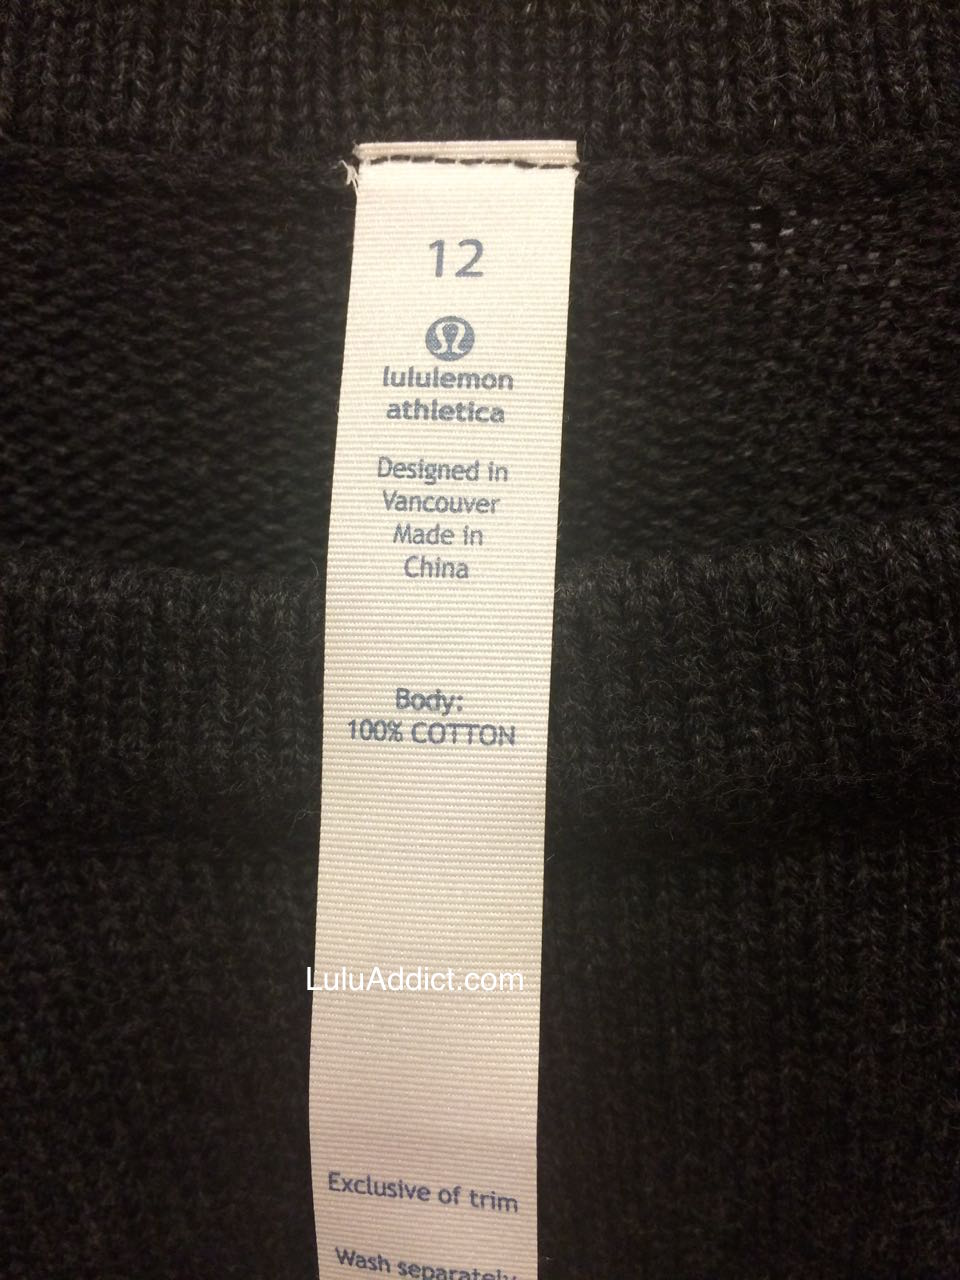 lululemon-bhakti-reality-ss tag